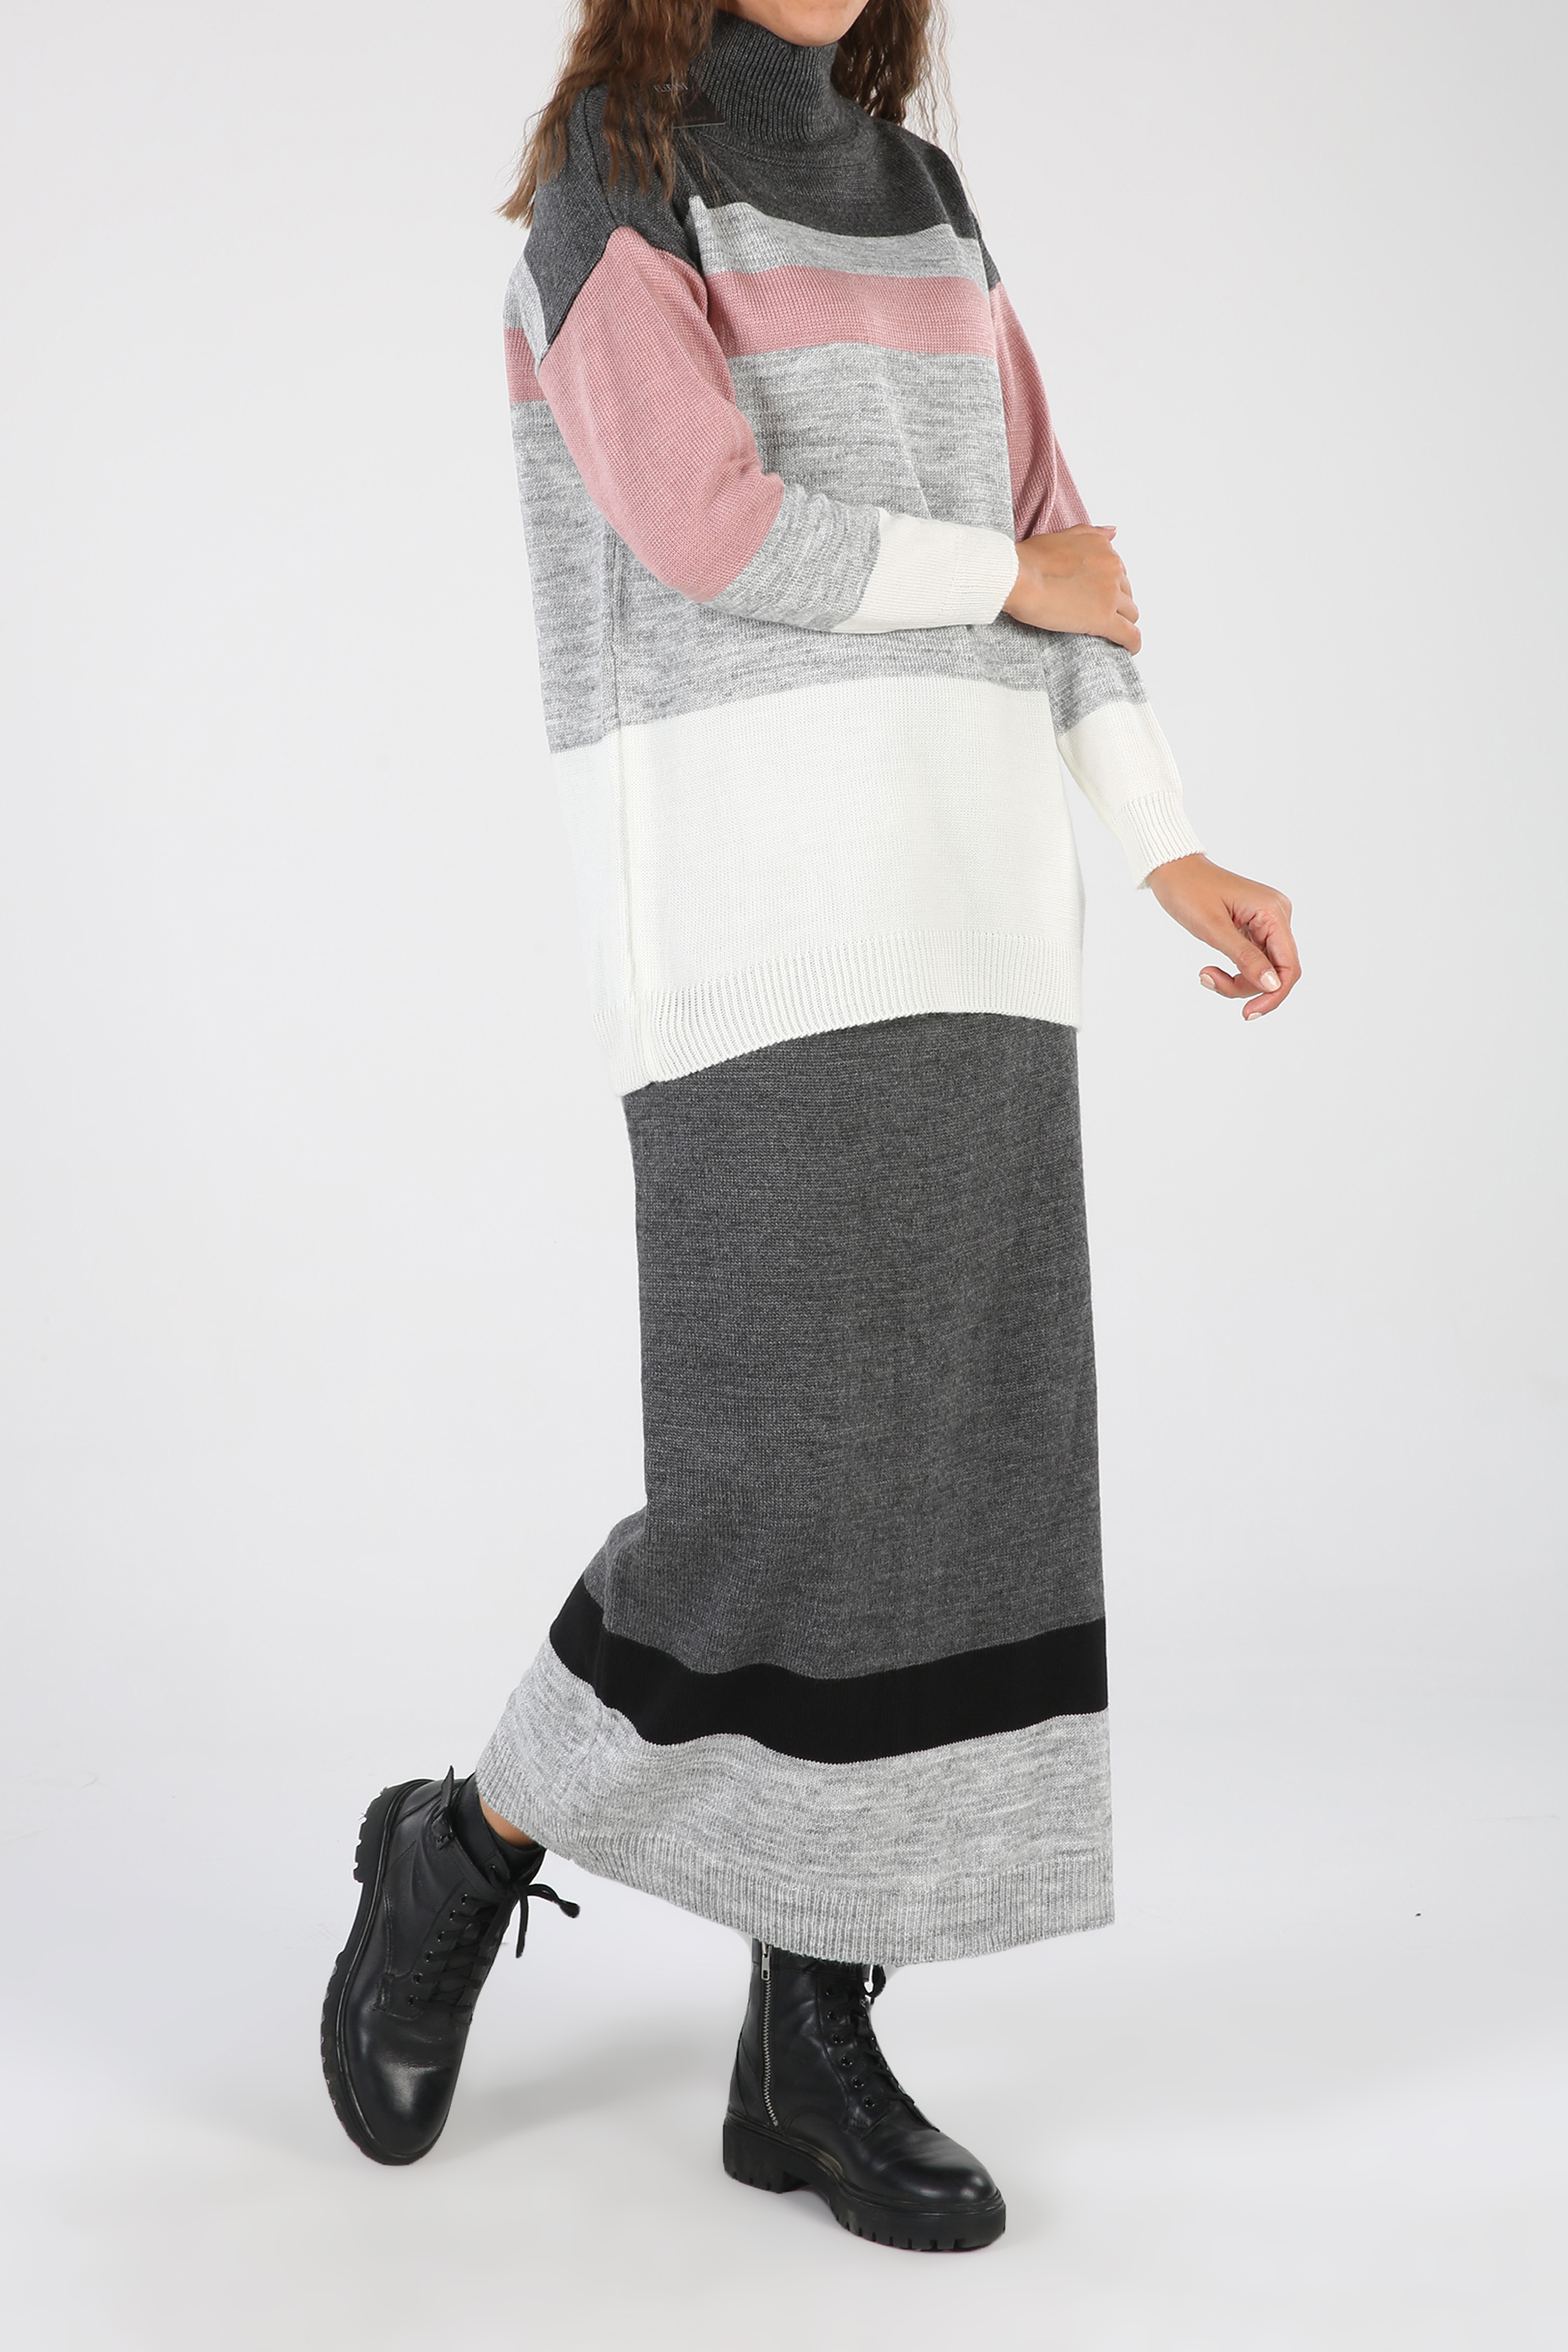 Knitwear Hijab Suit With Skirt